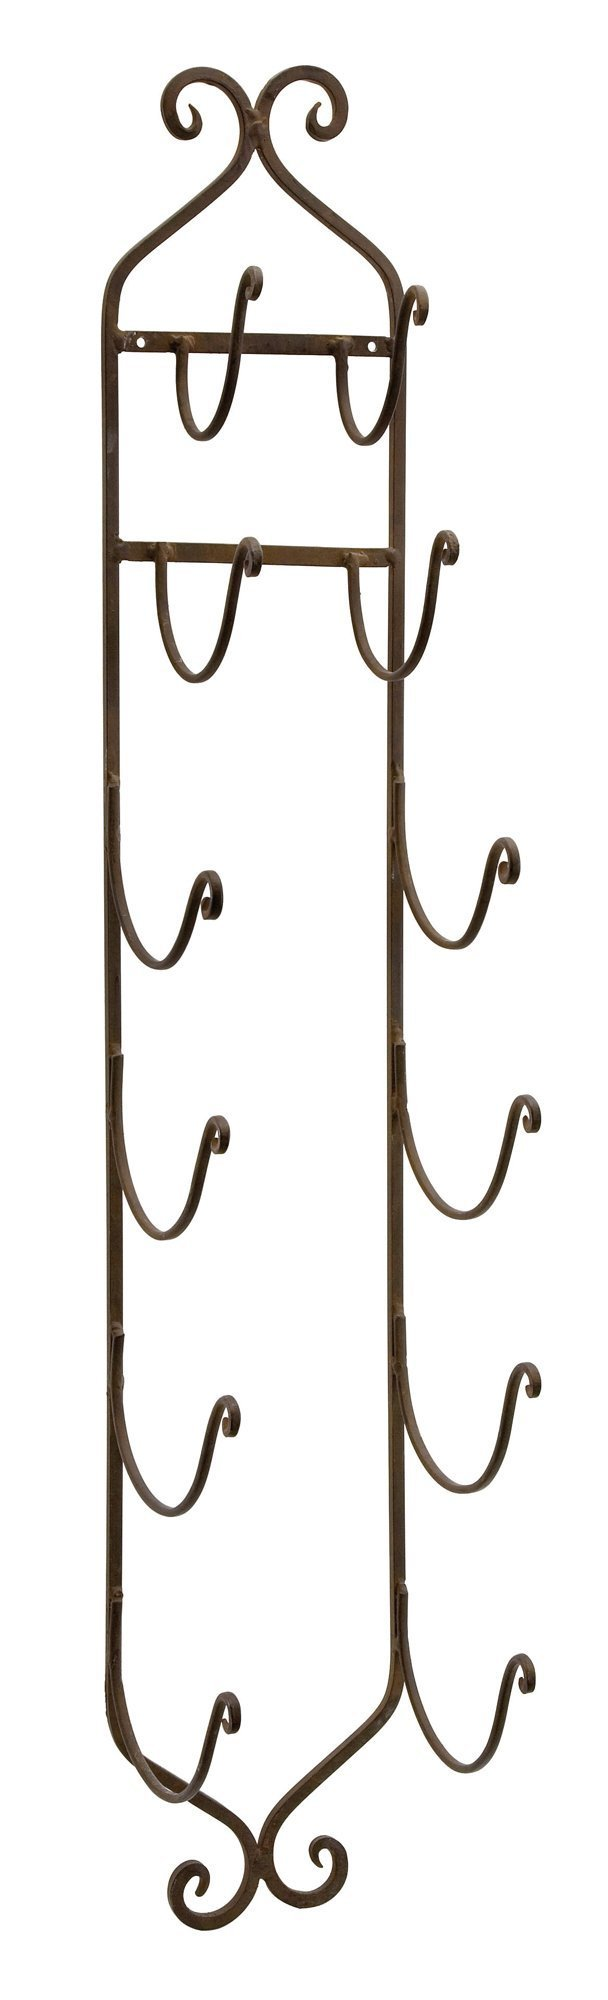 Explore imax 9748 towel wine rack in dark brown compact wall mounted metal display rack for organizing towels wine bottles hats home storage and organizing